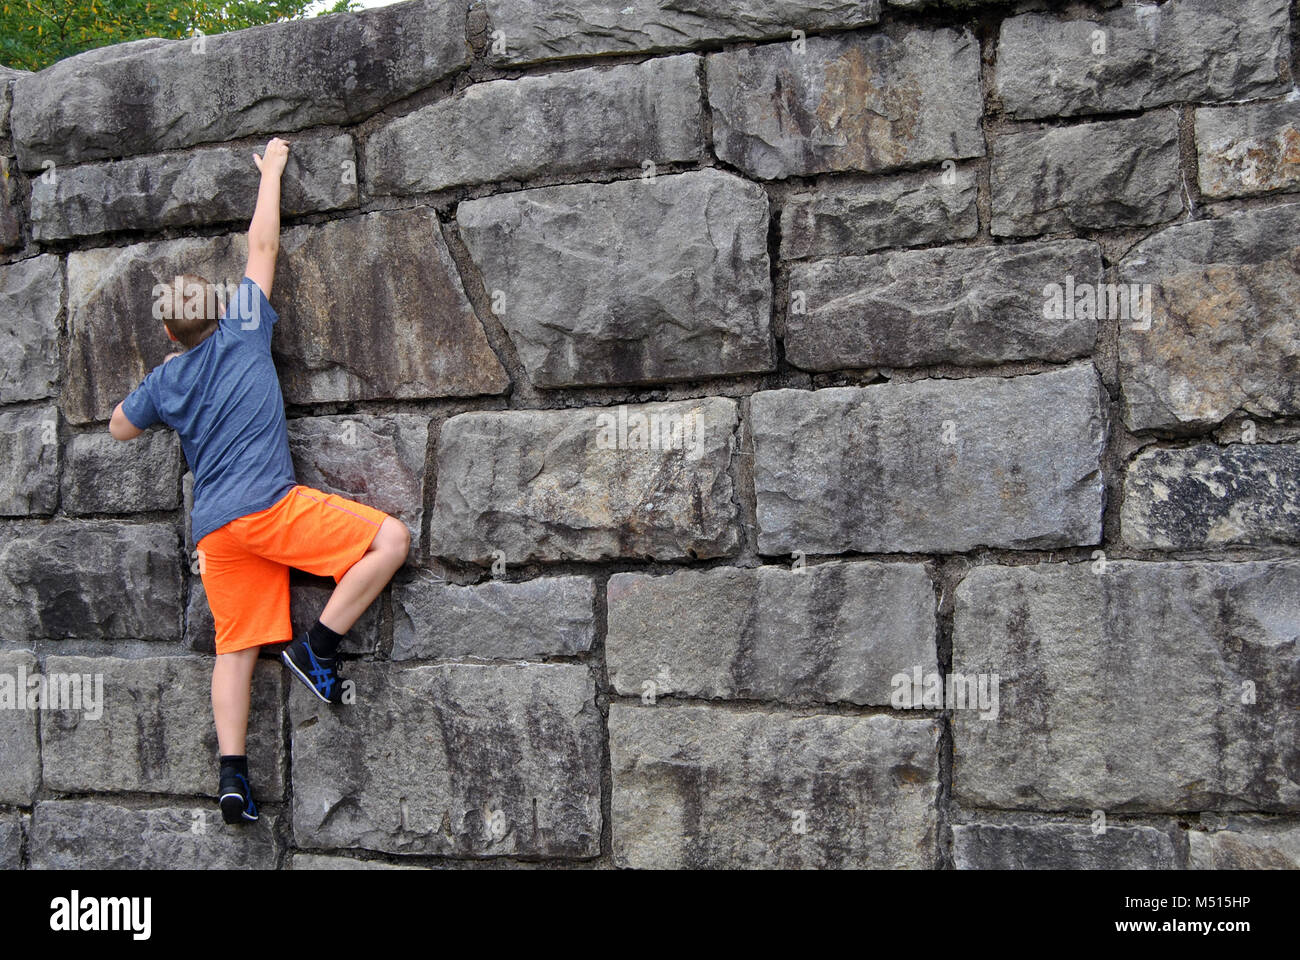 Boy climbing a Rock Wall - Stock Image